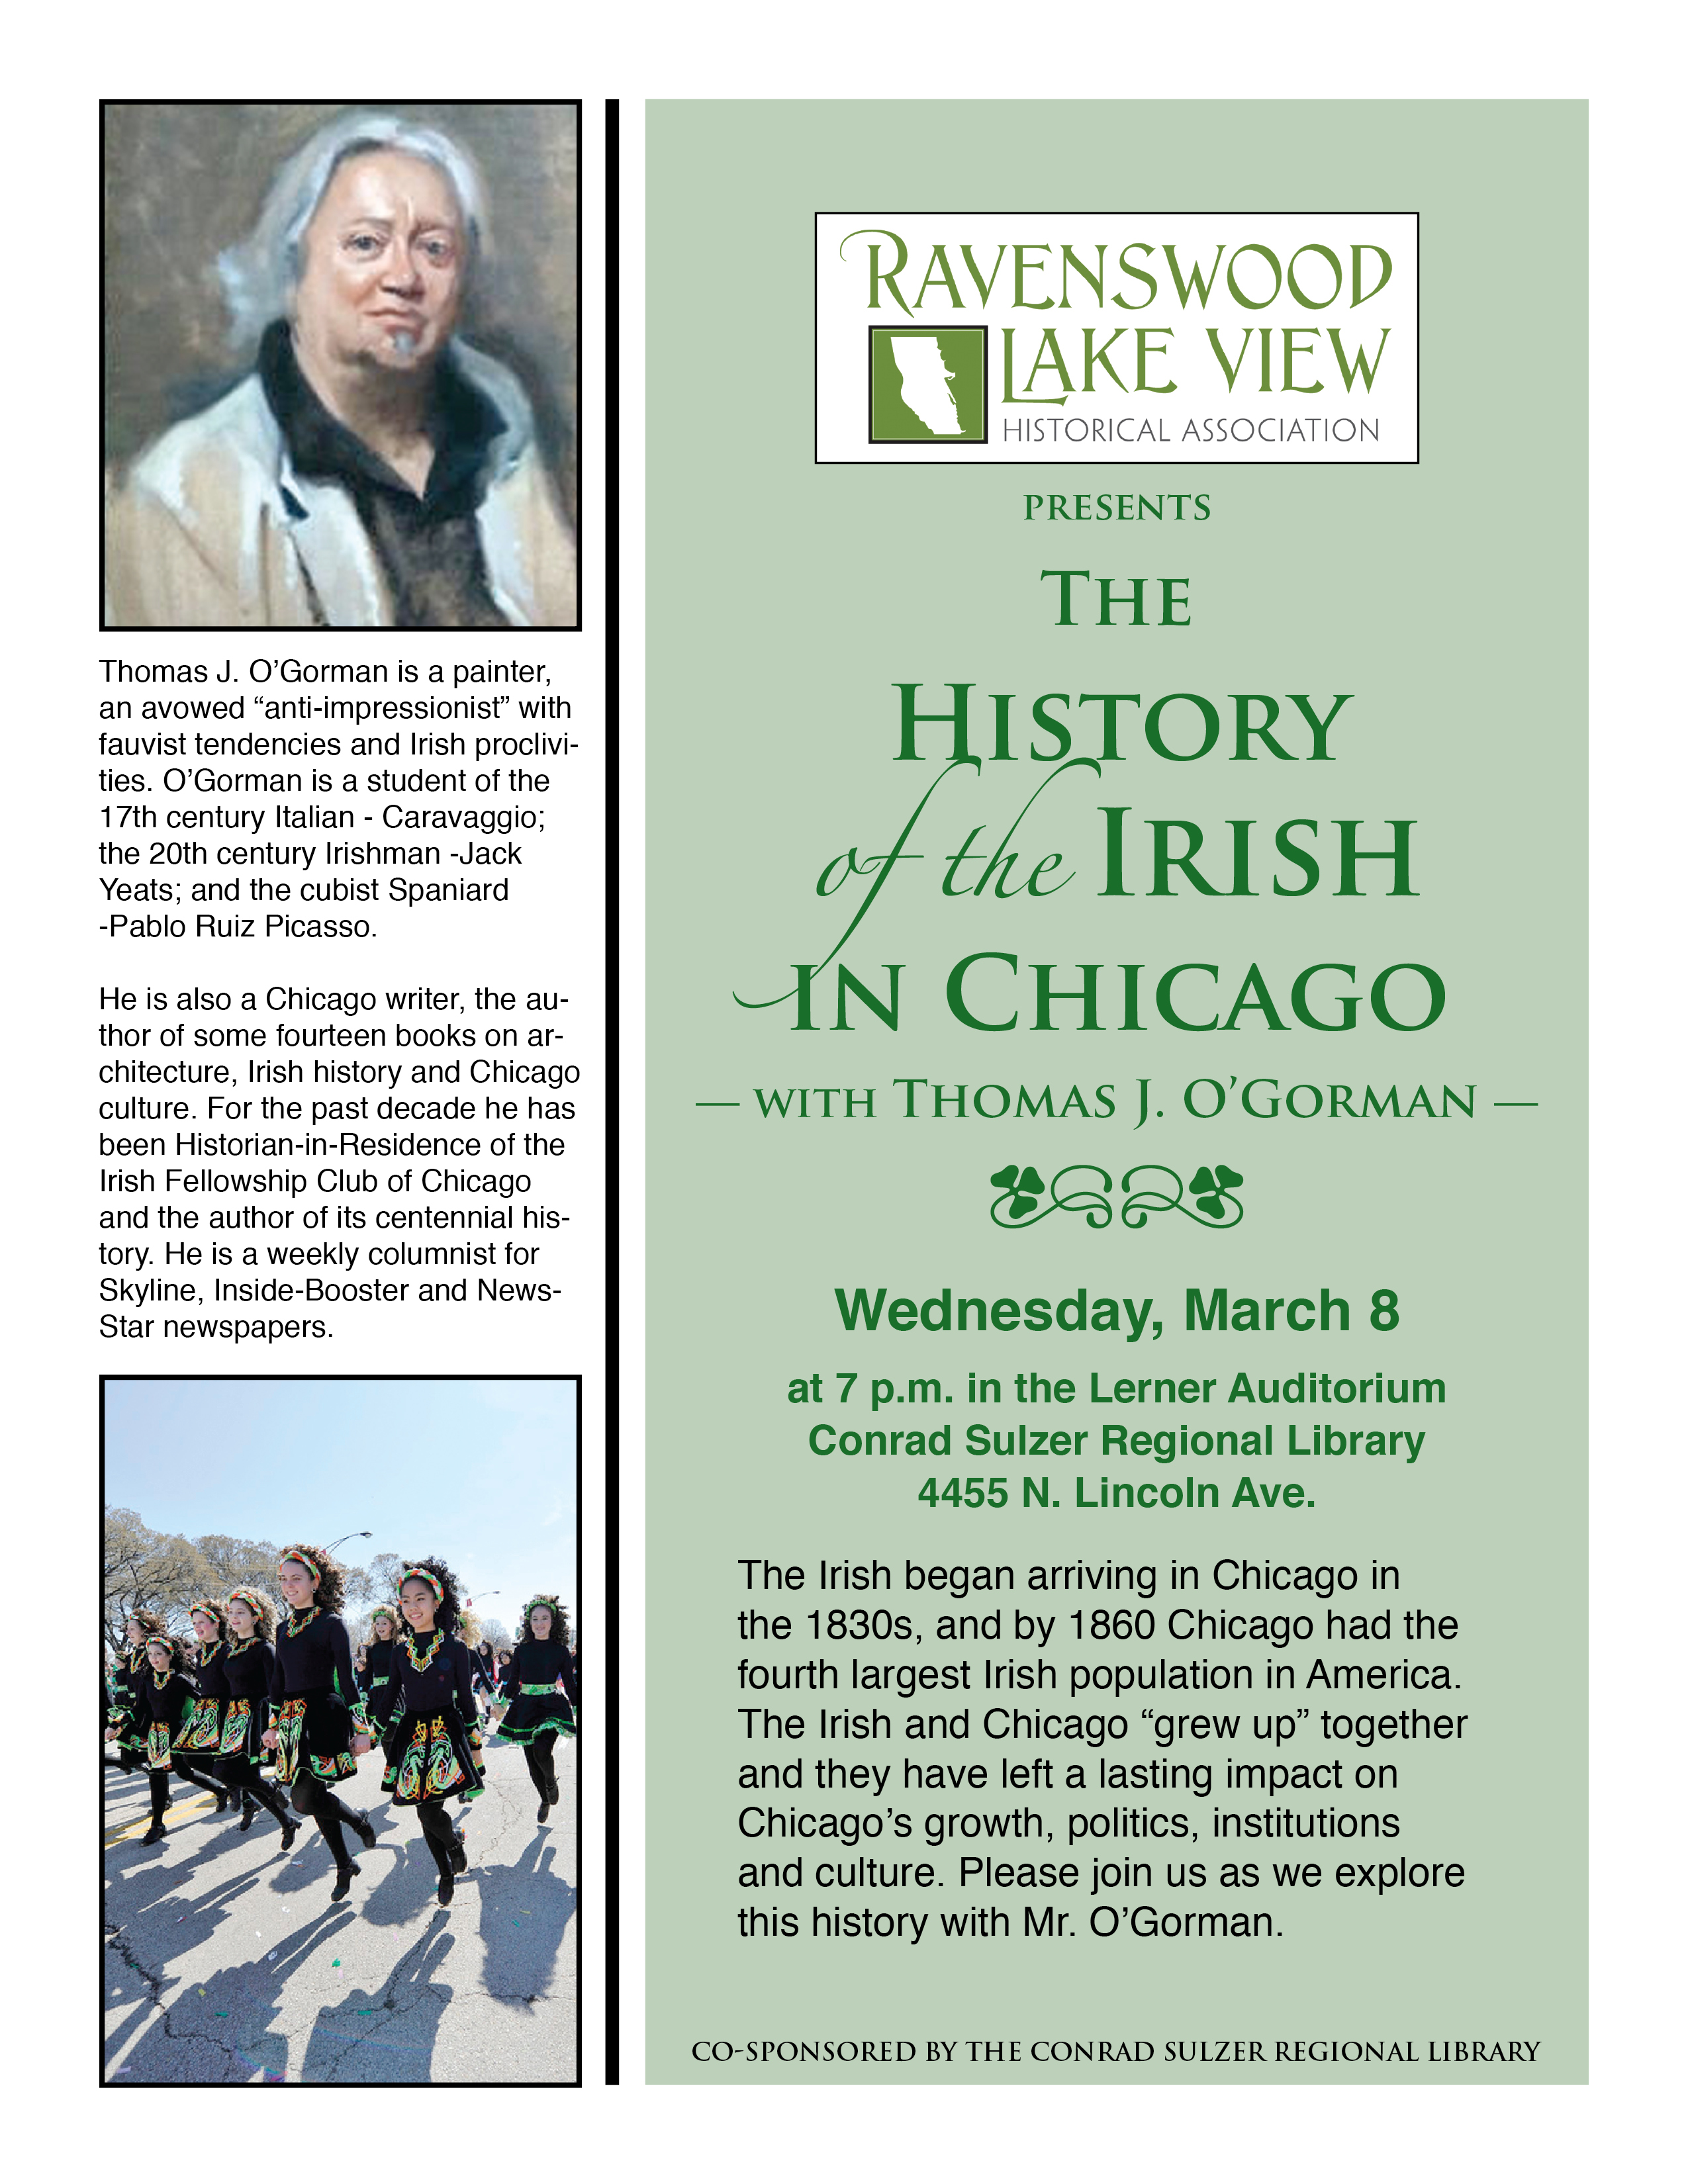 The History of the Irish in Chicago, Wednesday, March 8, 7:00 pm, Conrad Sulzer Regional Library 4455 N. Lincoln Ave